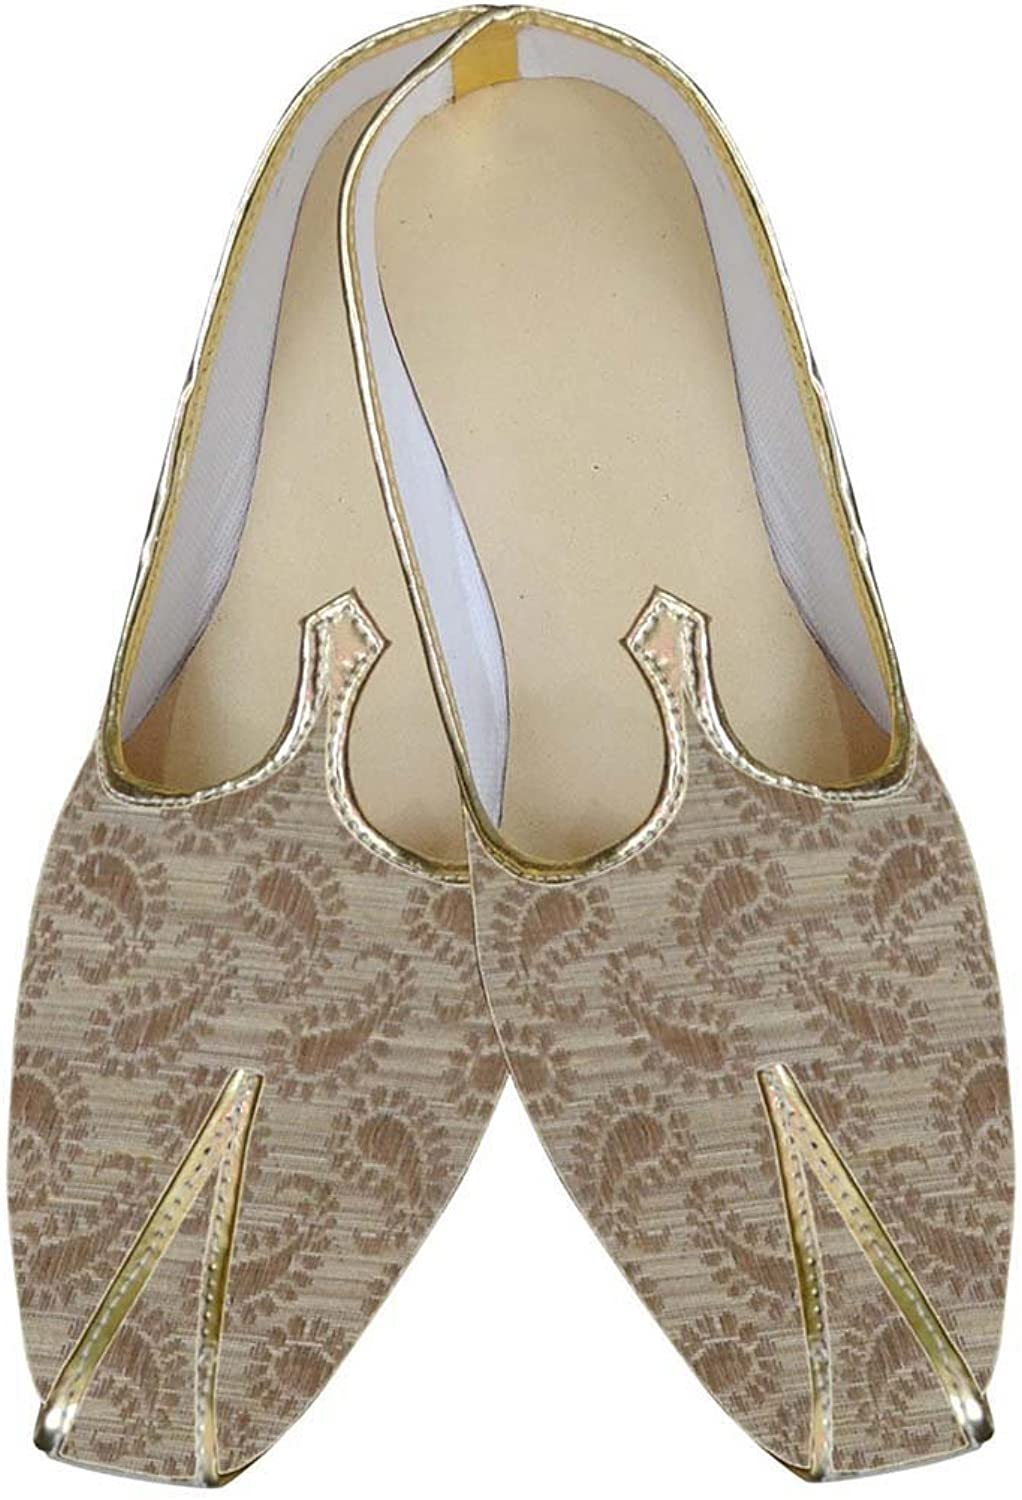 INMONARCH Mens Beige Brocade shoes Traditional MJ0021